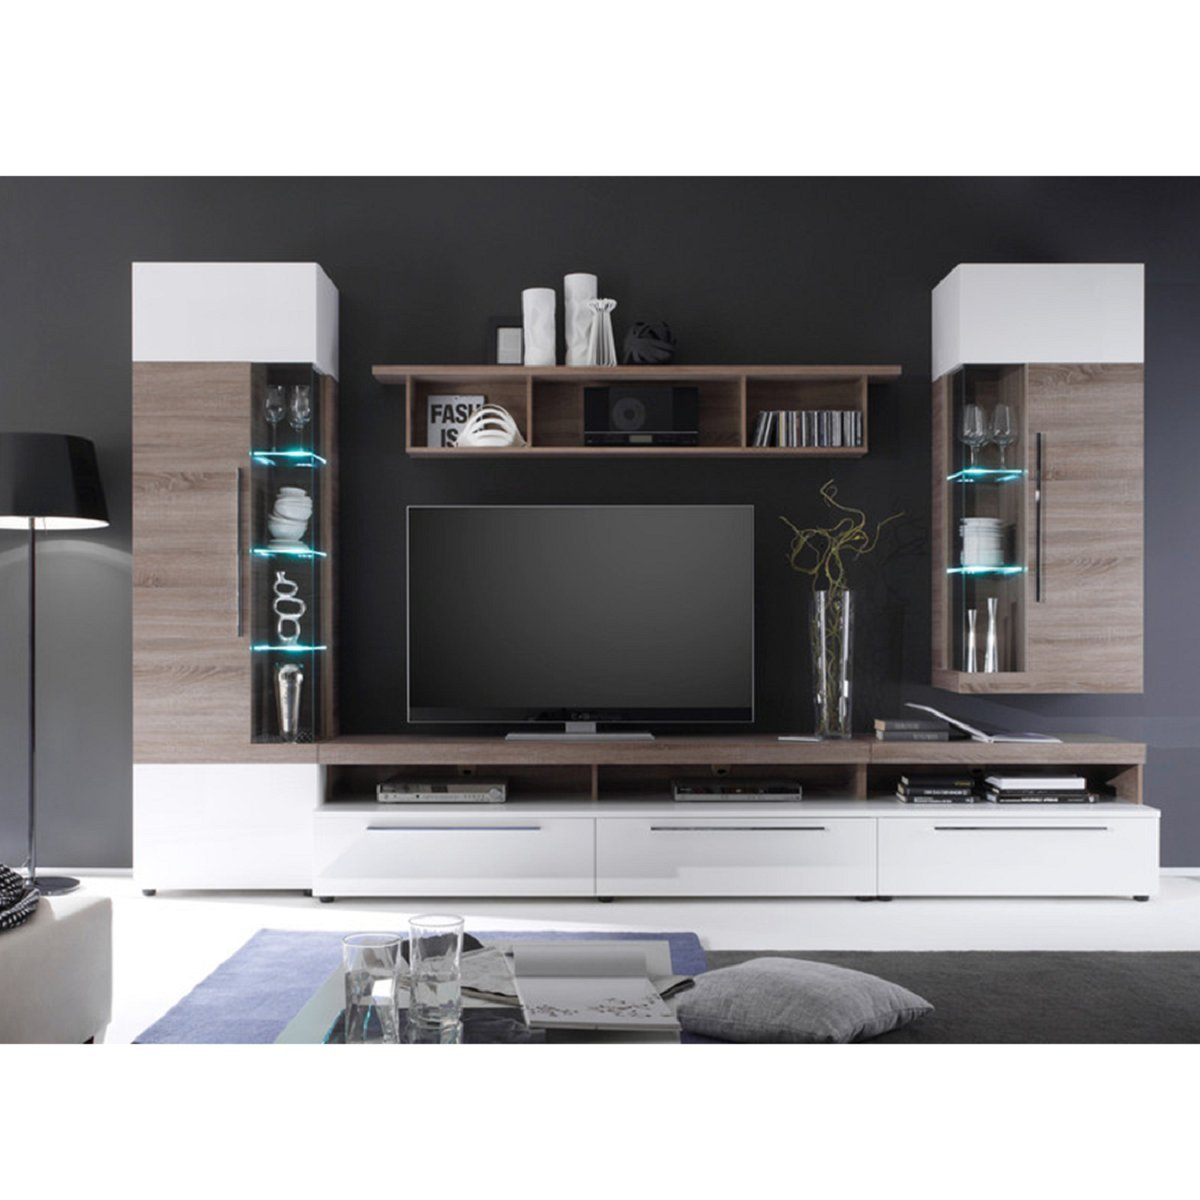 dreams4home wohnwand 39 stellar 39 optional mit beleuchtung schrank tv schrank tv element. Black Bedroom Furniture Sets. Home Design Ideas